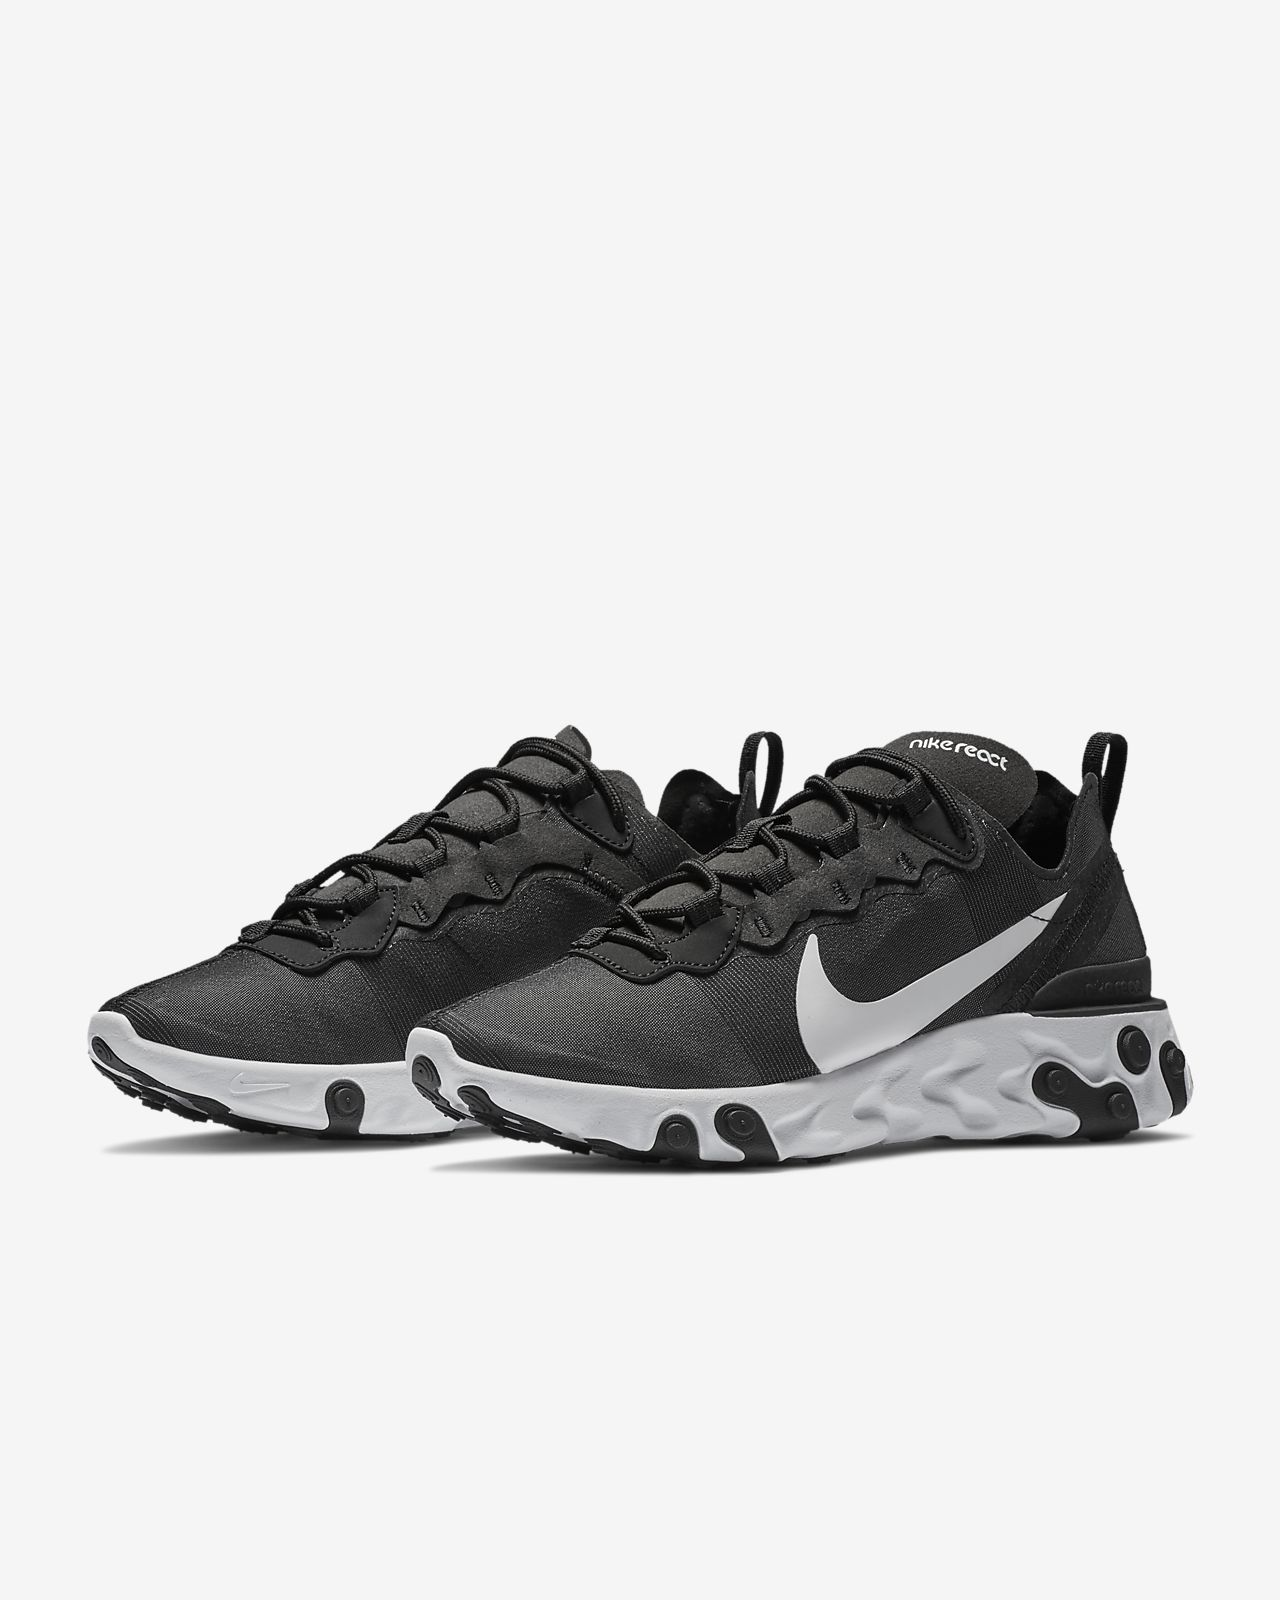 uk availability edbb1 9b796 ... Nike React Element 55 Women s Shoe